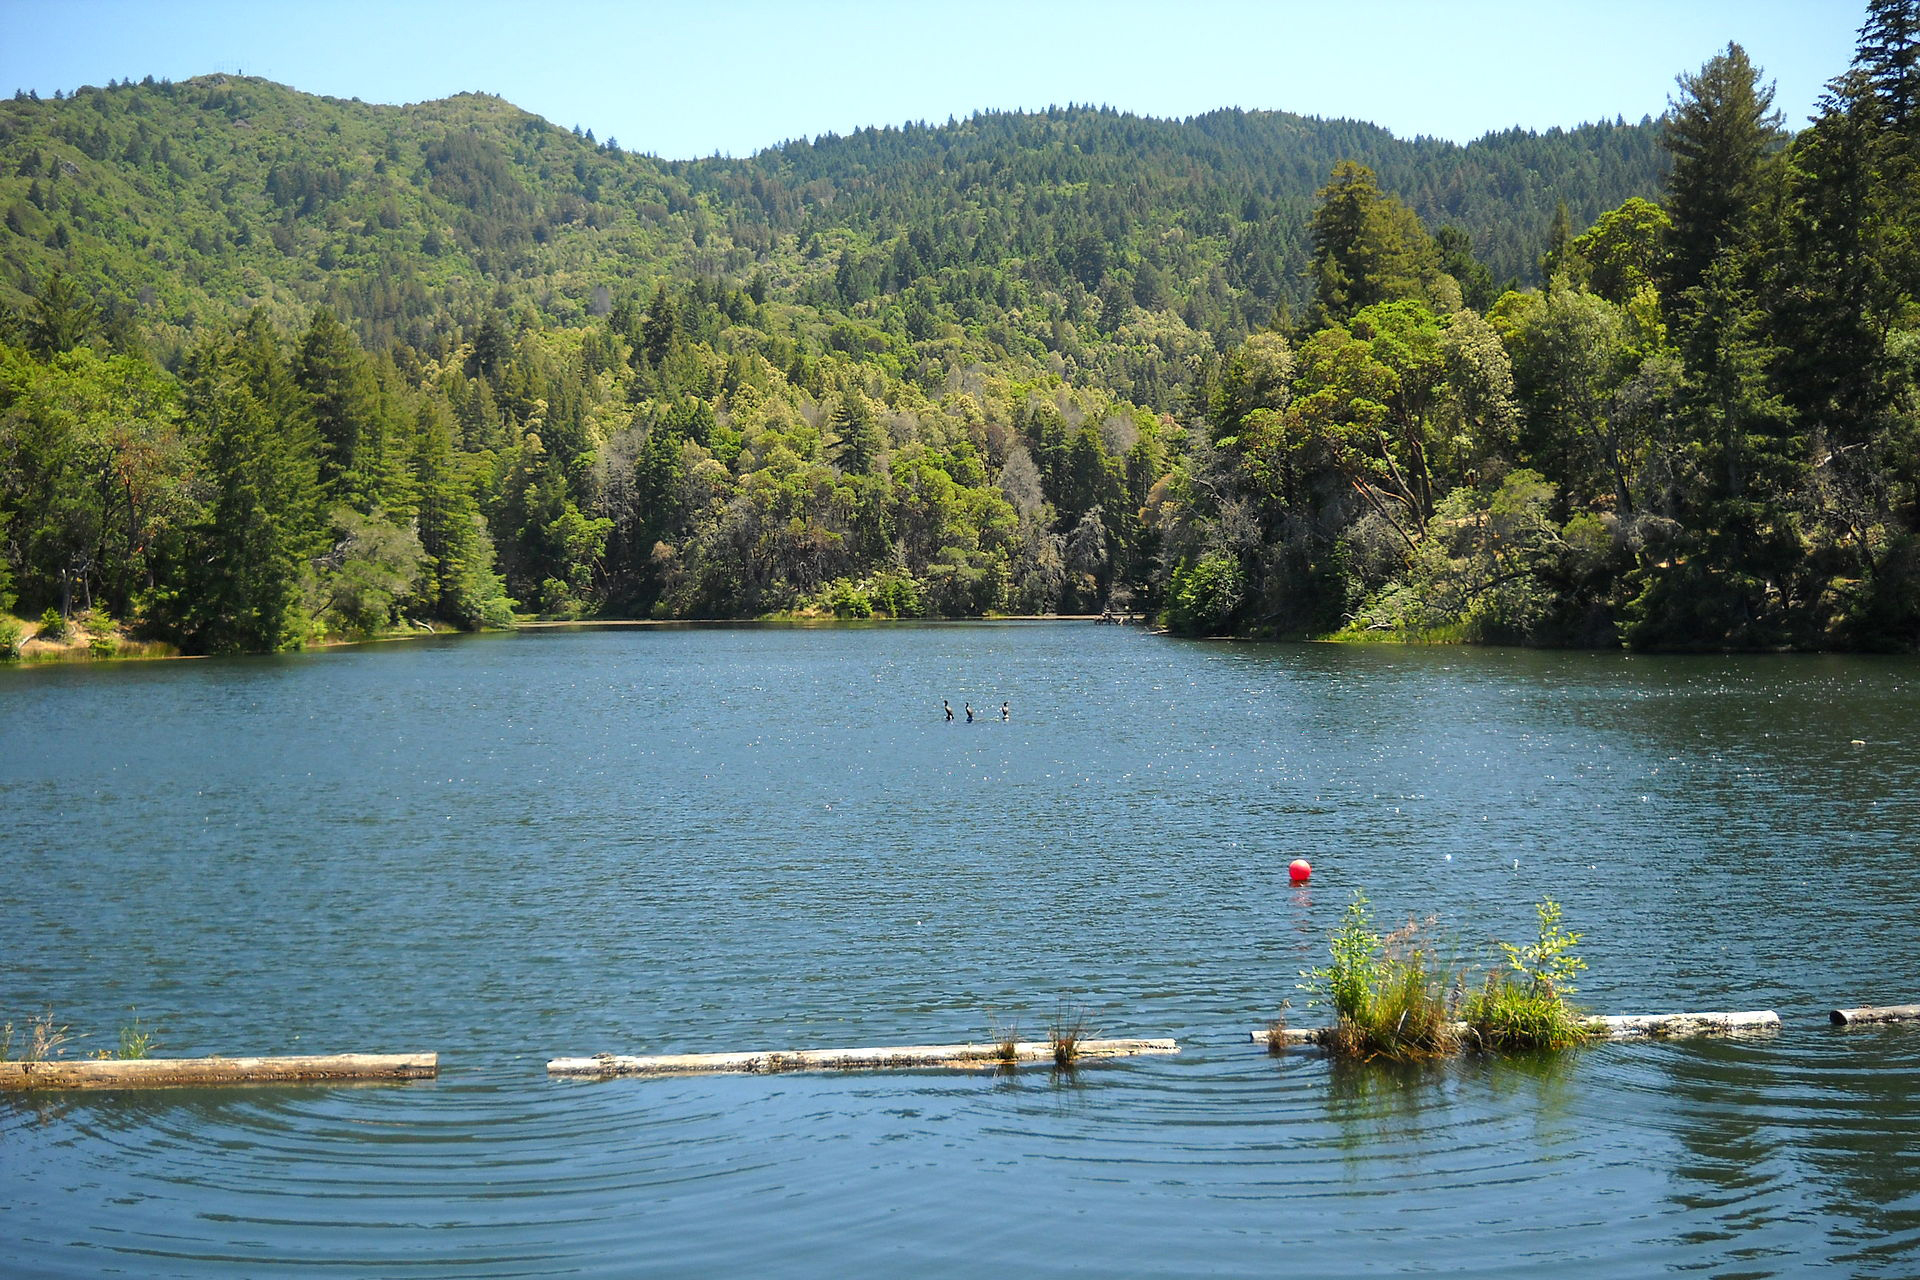 Lagunitas Lake - Marin County, CA